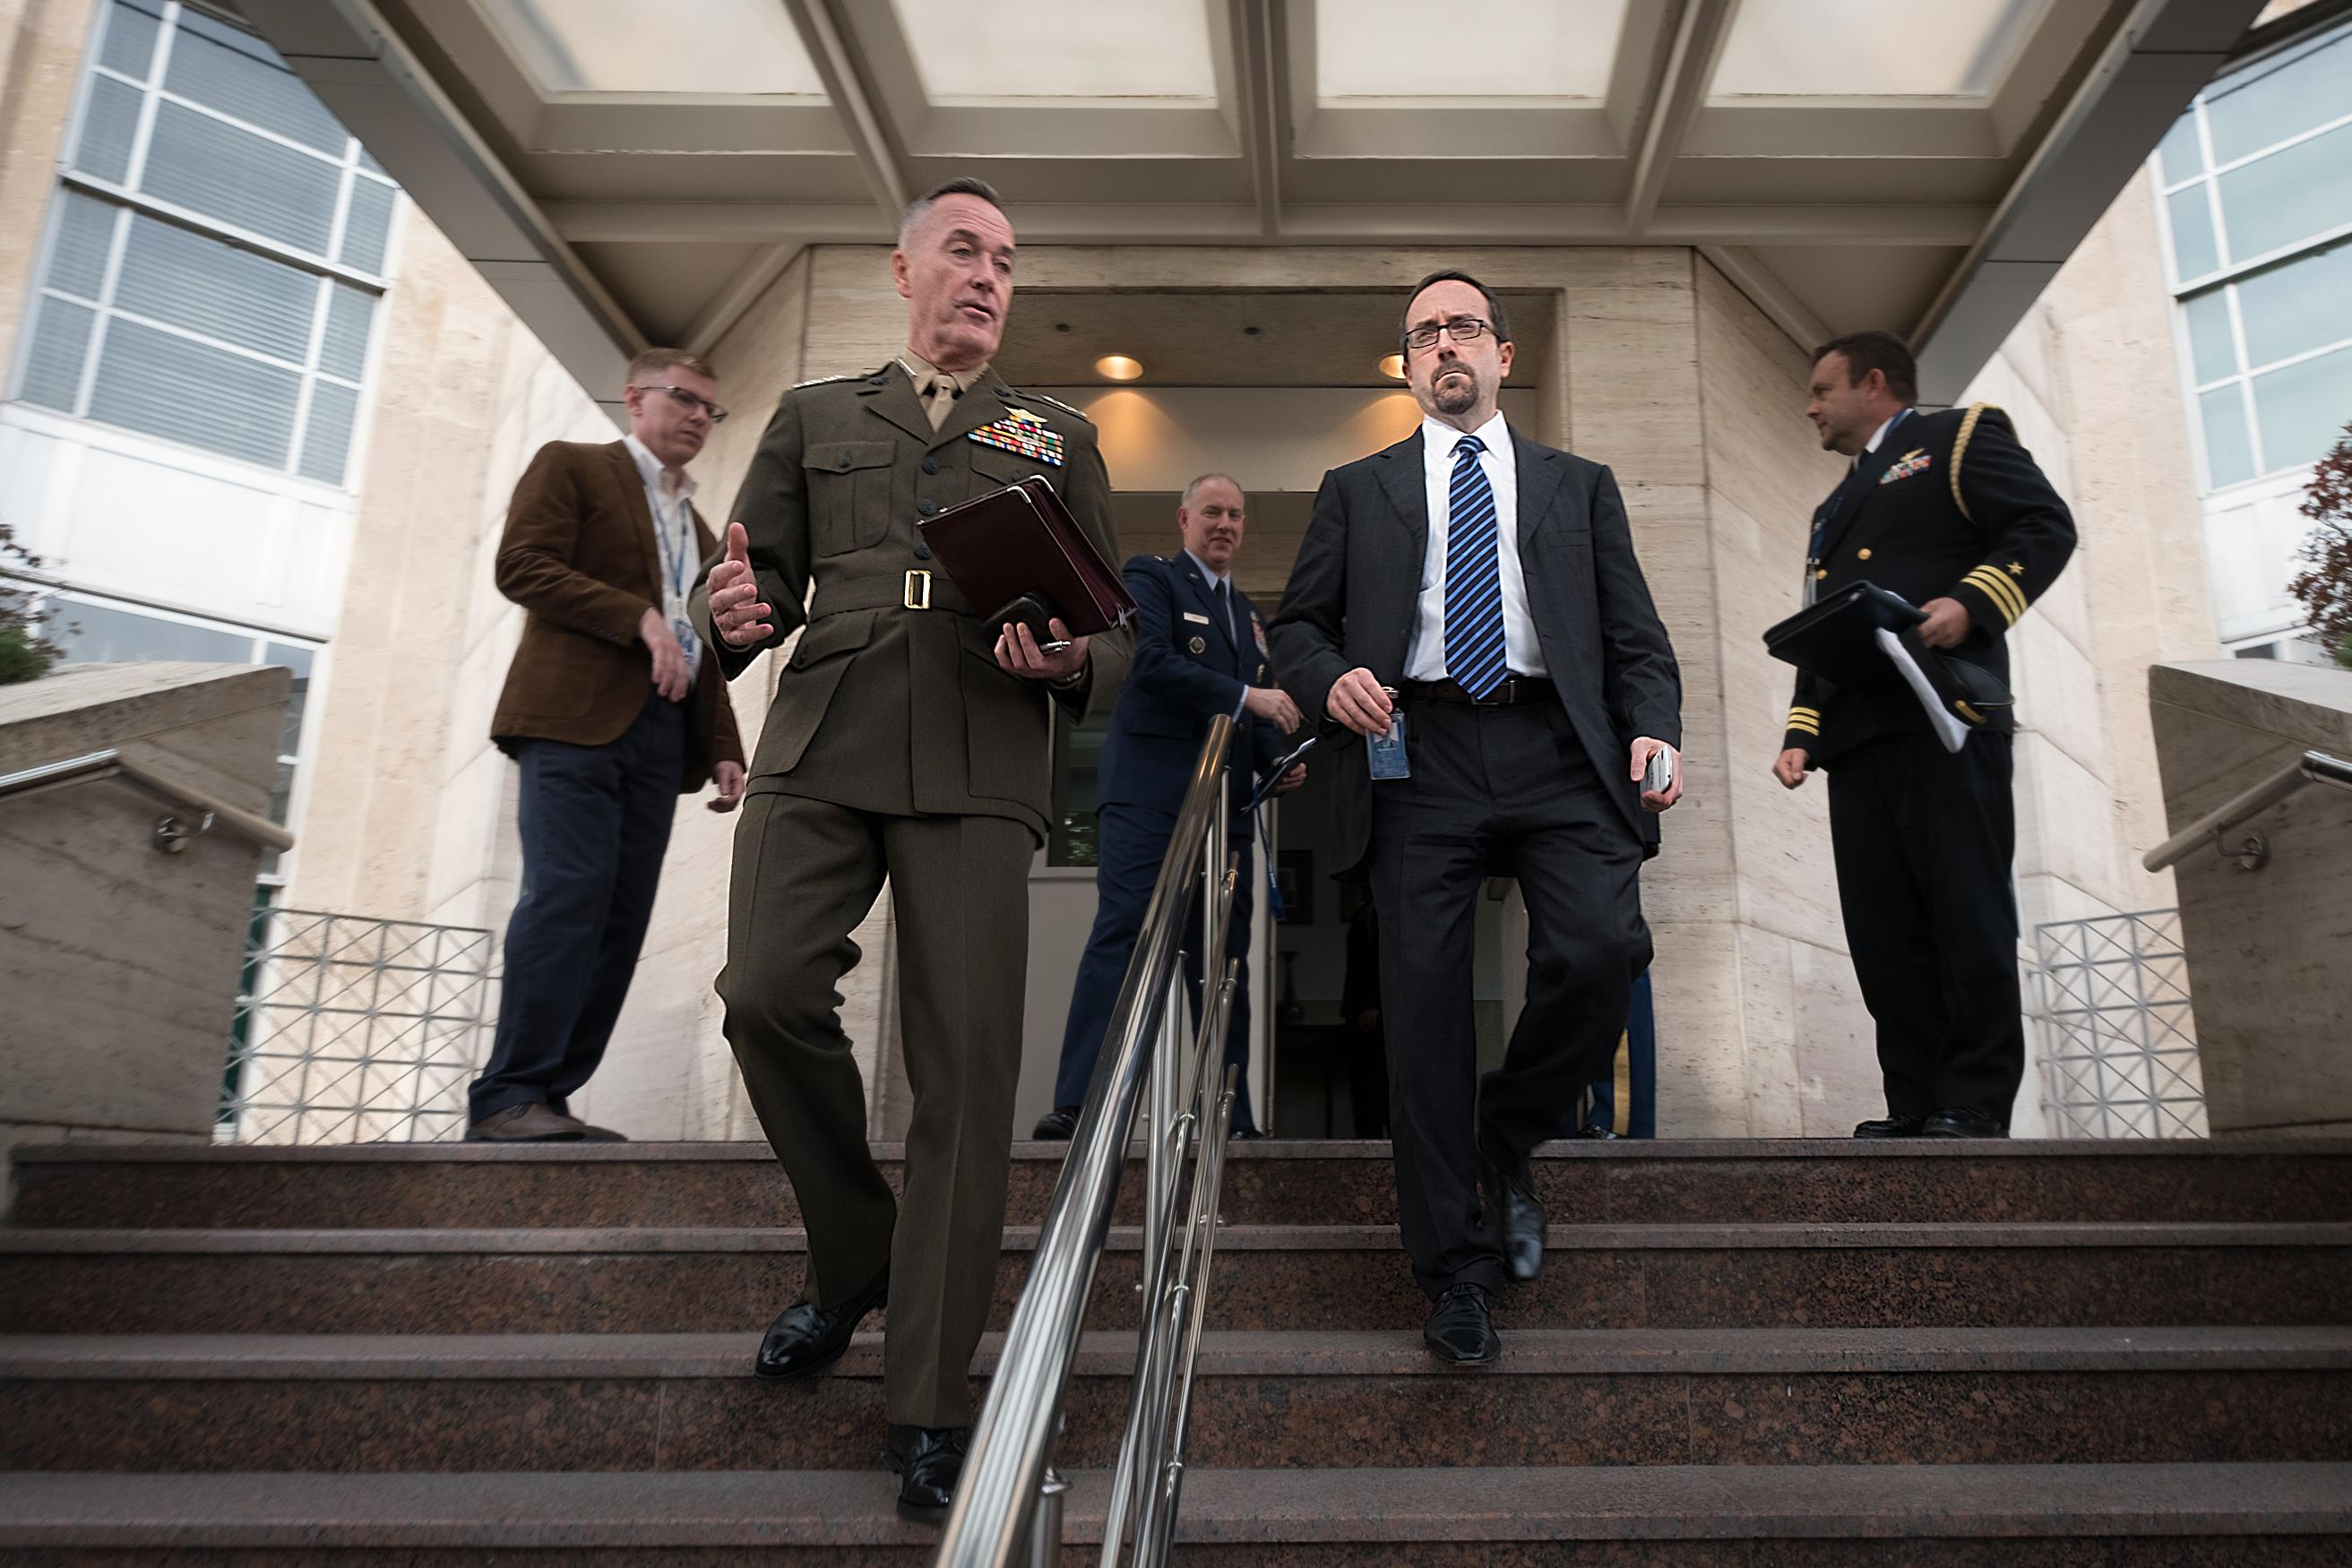 Marine Corps Gen. Joe Dunford, chairman of the Joint Chiefs of Staff, and U.S. Ambassador to Turkey John R. Bass head to a meeting.